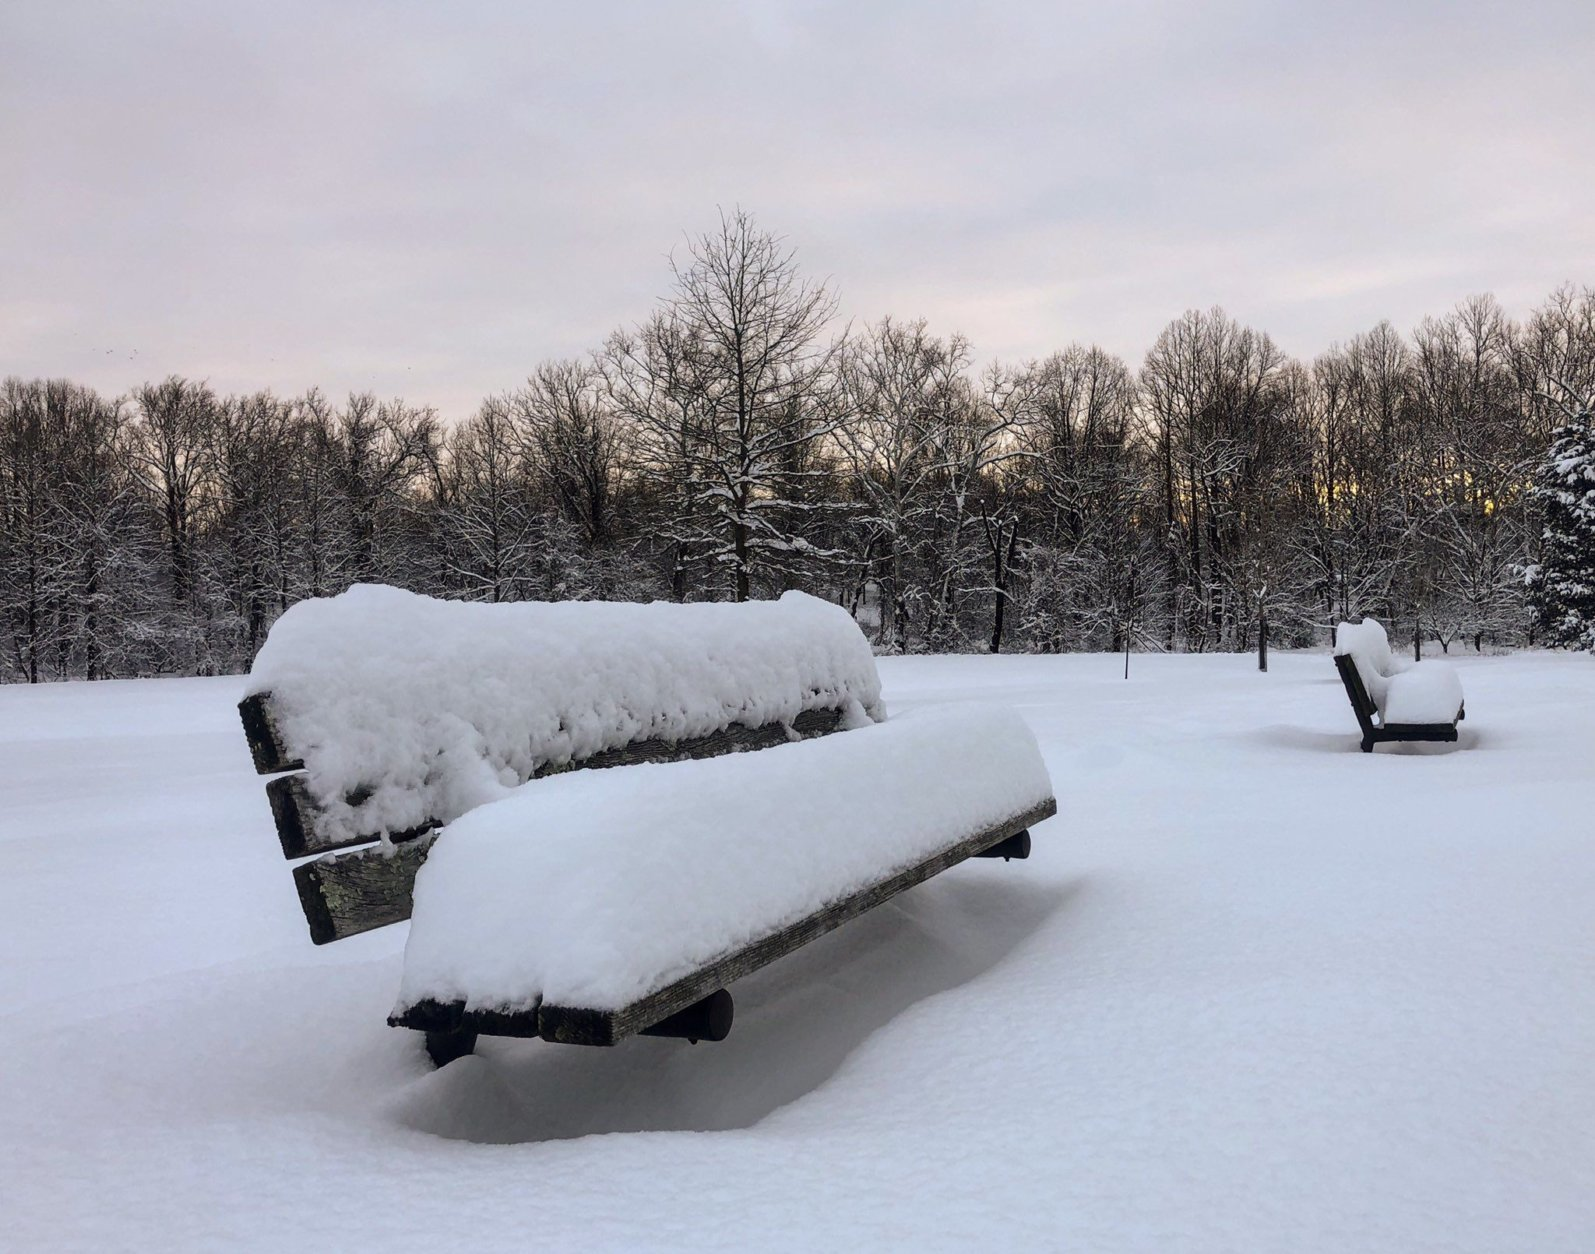 The weekend storm gave way to a serene wintry morning in this Montgomery County park. Most of D.C.'s northwest suburbs received over 10 inches of snow, with some totals near Germantown and Gaithersburg over one foot. (WTOP/Melissa Howell)